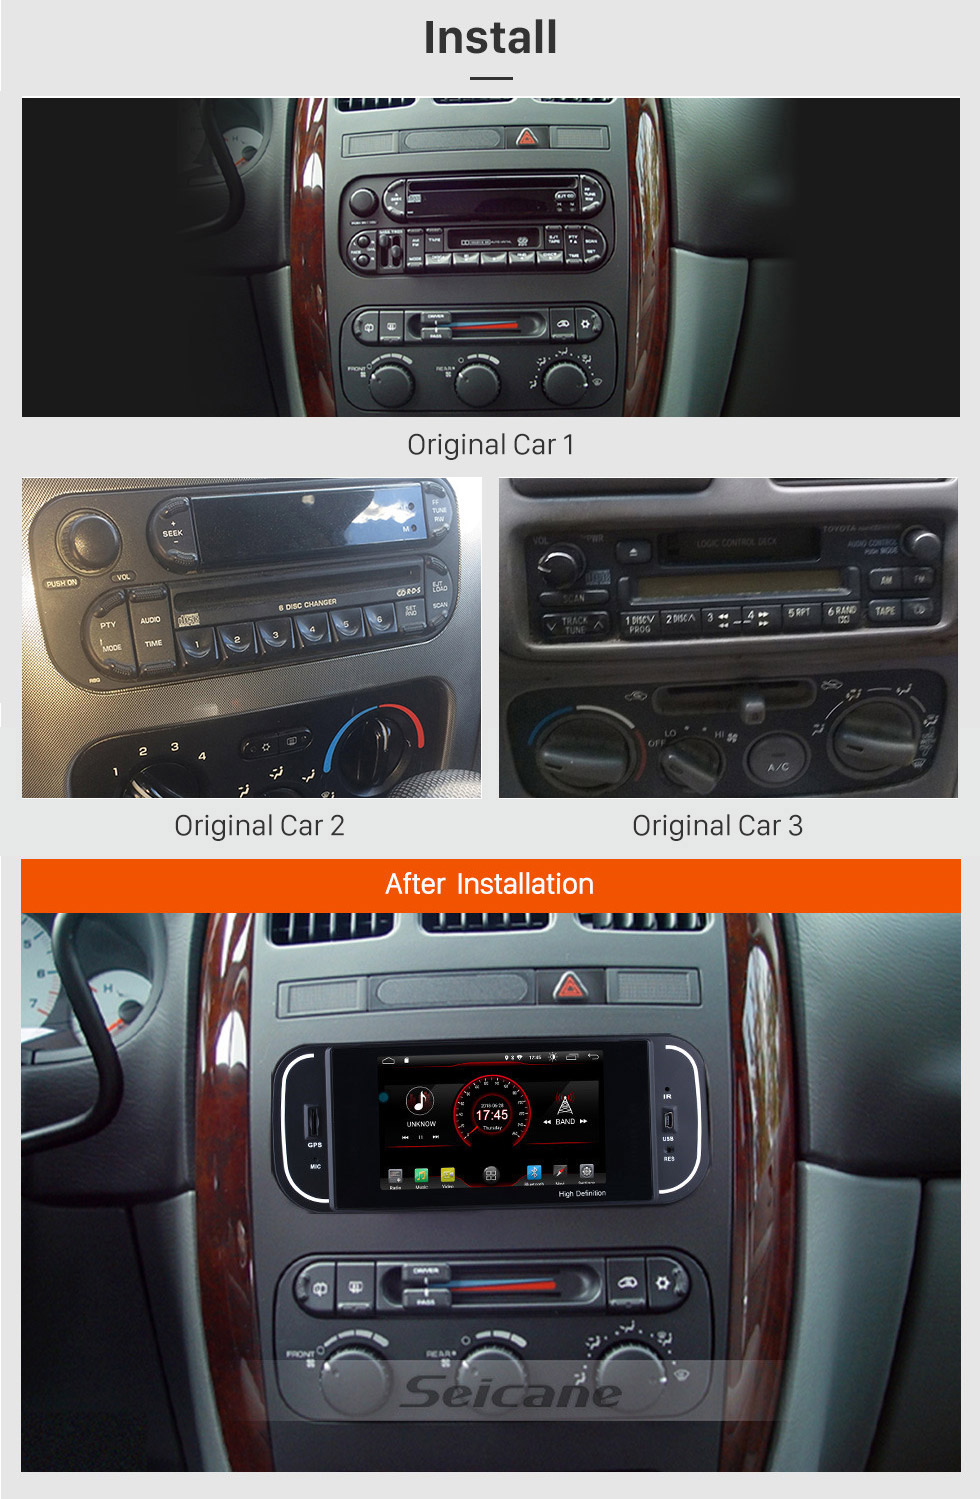 Seicane Android 8.1 HD TouchScreen Radio for 2003-2006 Jeep Wrangler with GPS Navigation System DVR WIFI OBD2 Bluetooth Steering Wheel control Mirror link 1080P TV USB SD